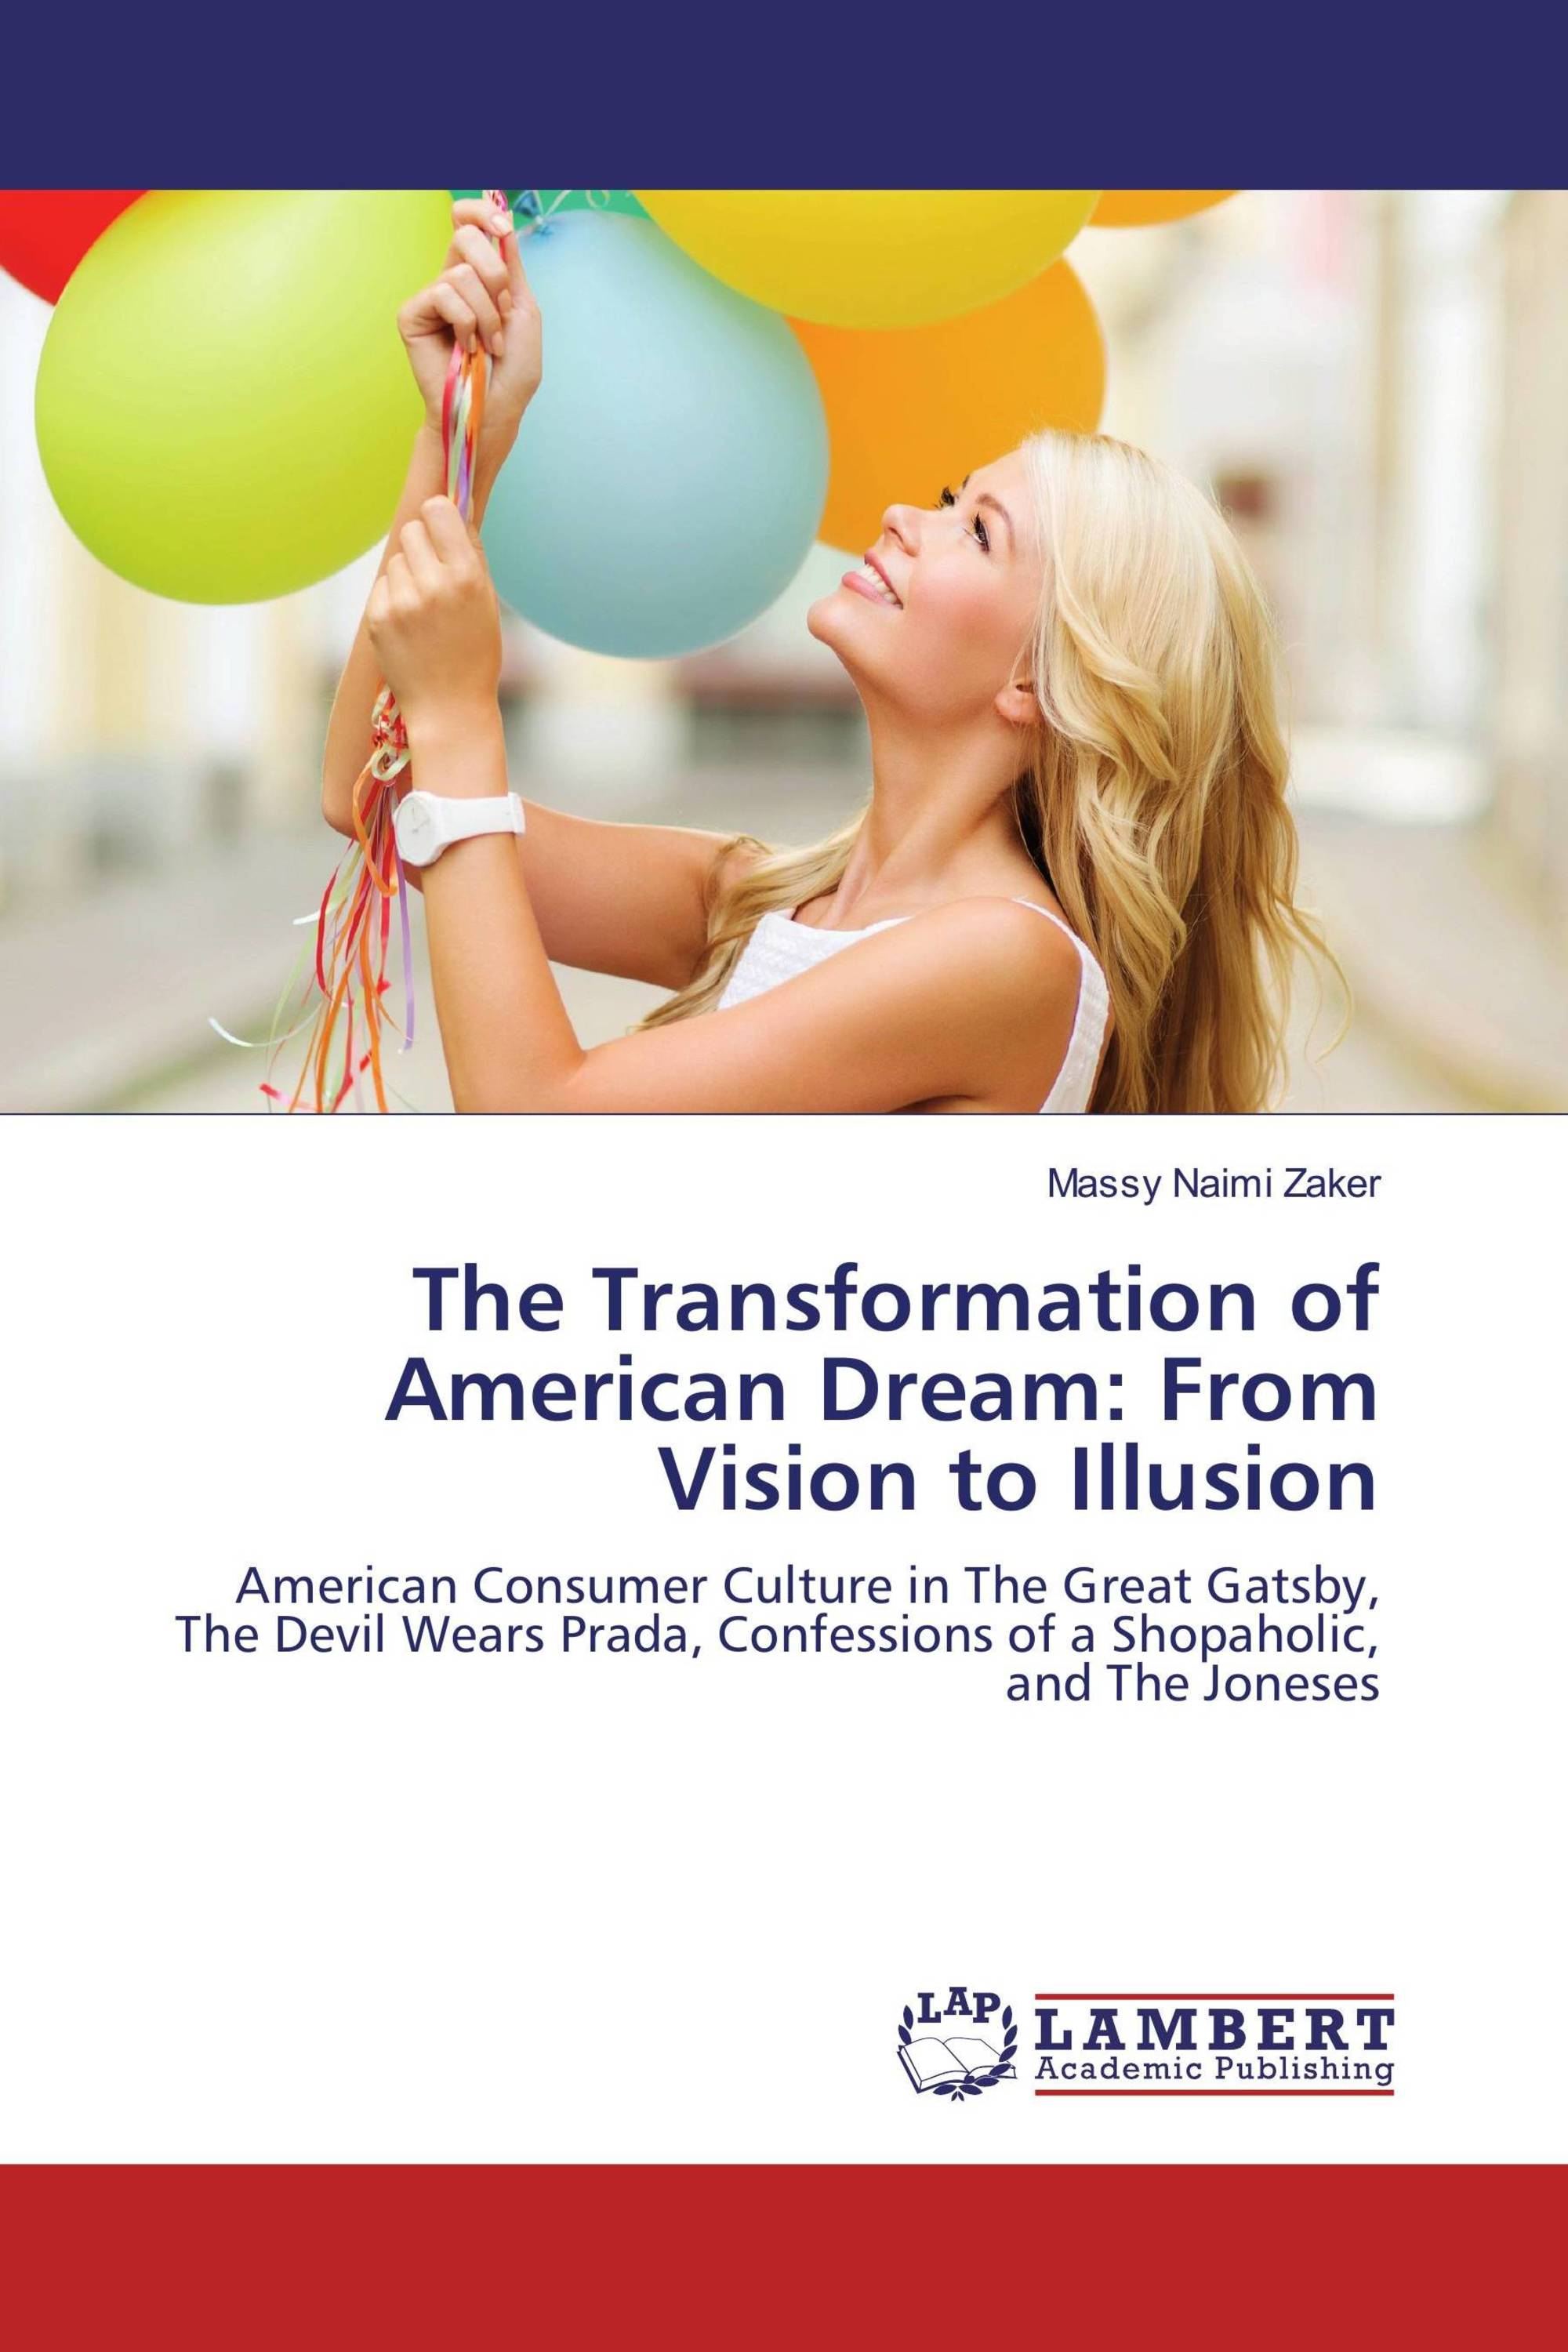 the transformation of the american dream in the great gatsby